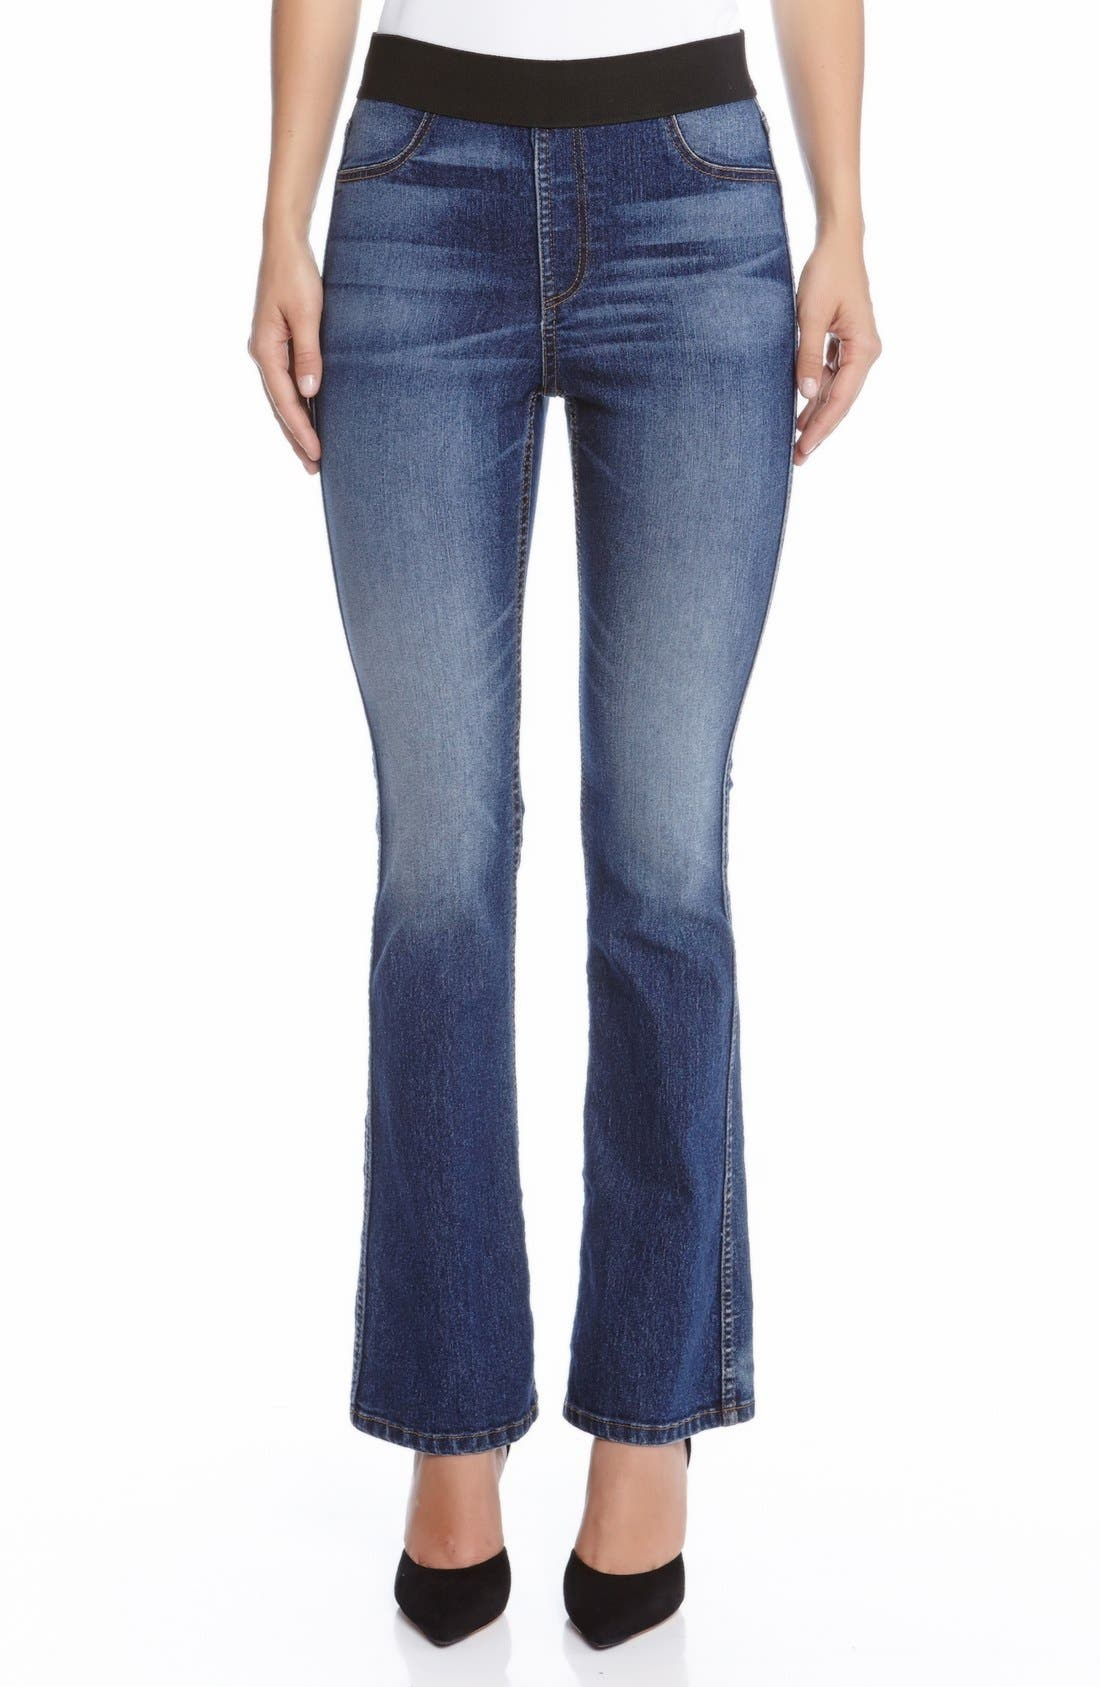 Alternate Image 1 Selected - Karen Kane Pull-On Stretch Bootcut Jeans (Blue)